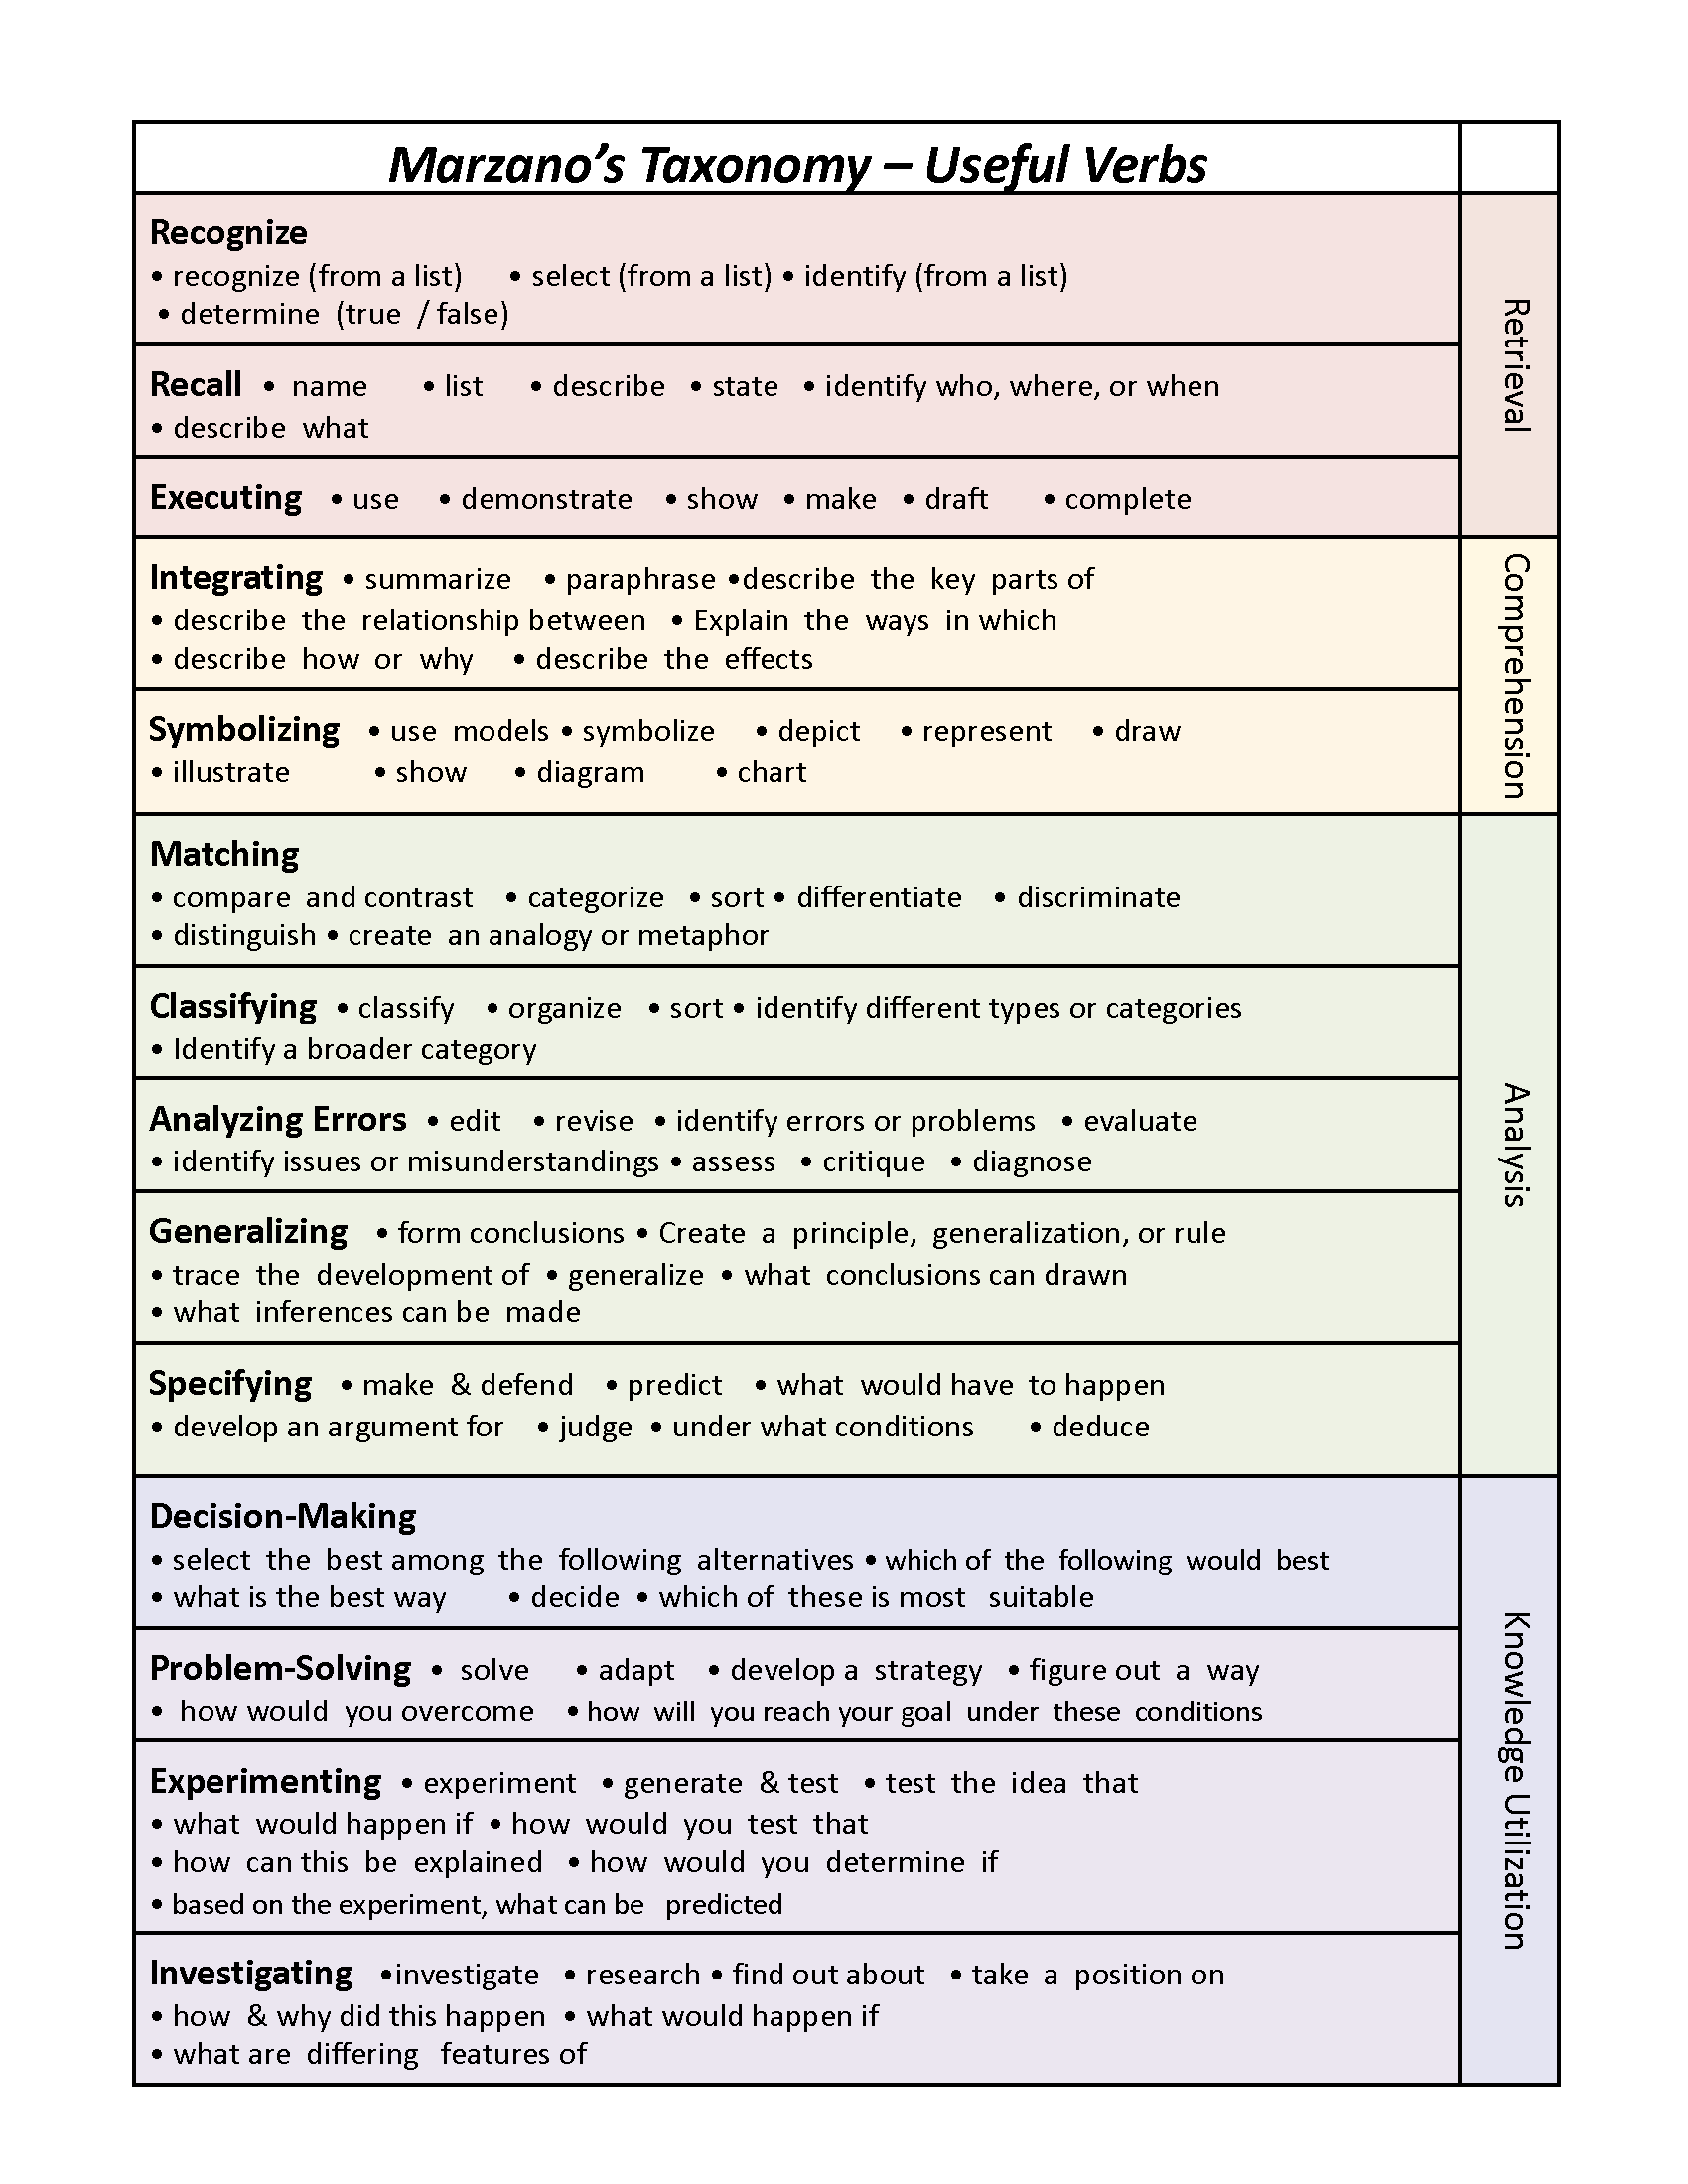 How To Use Marzano S Taxonomy To Write Scales